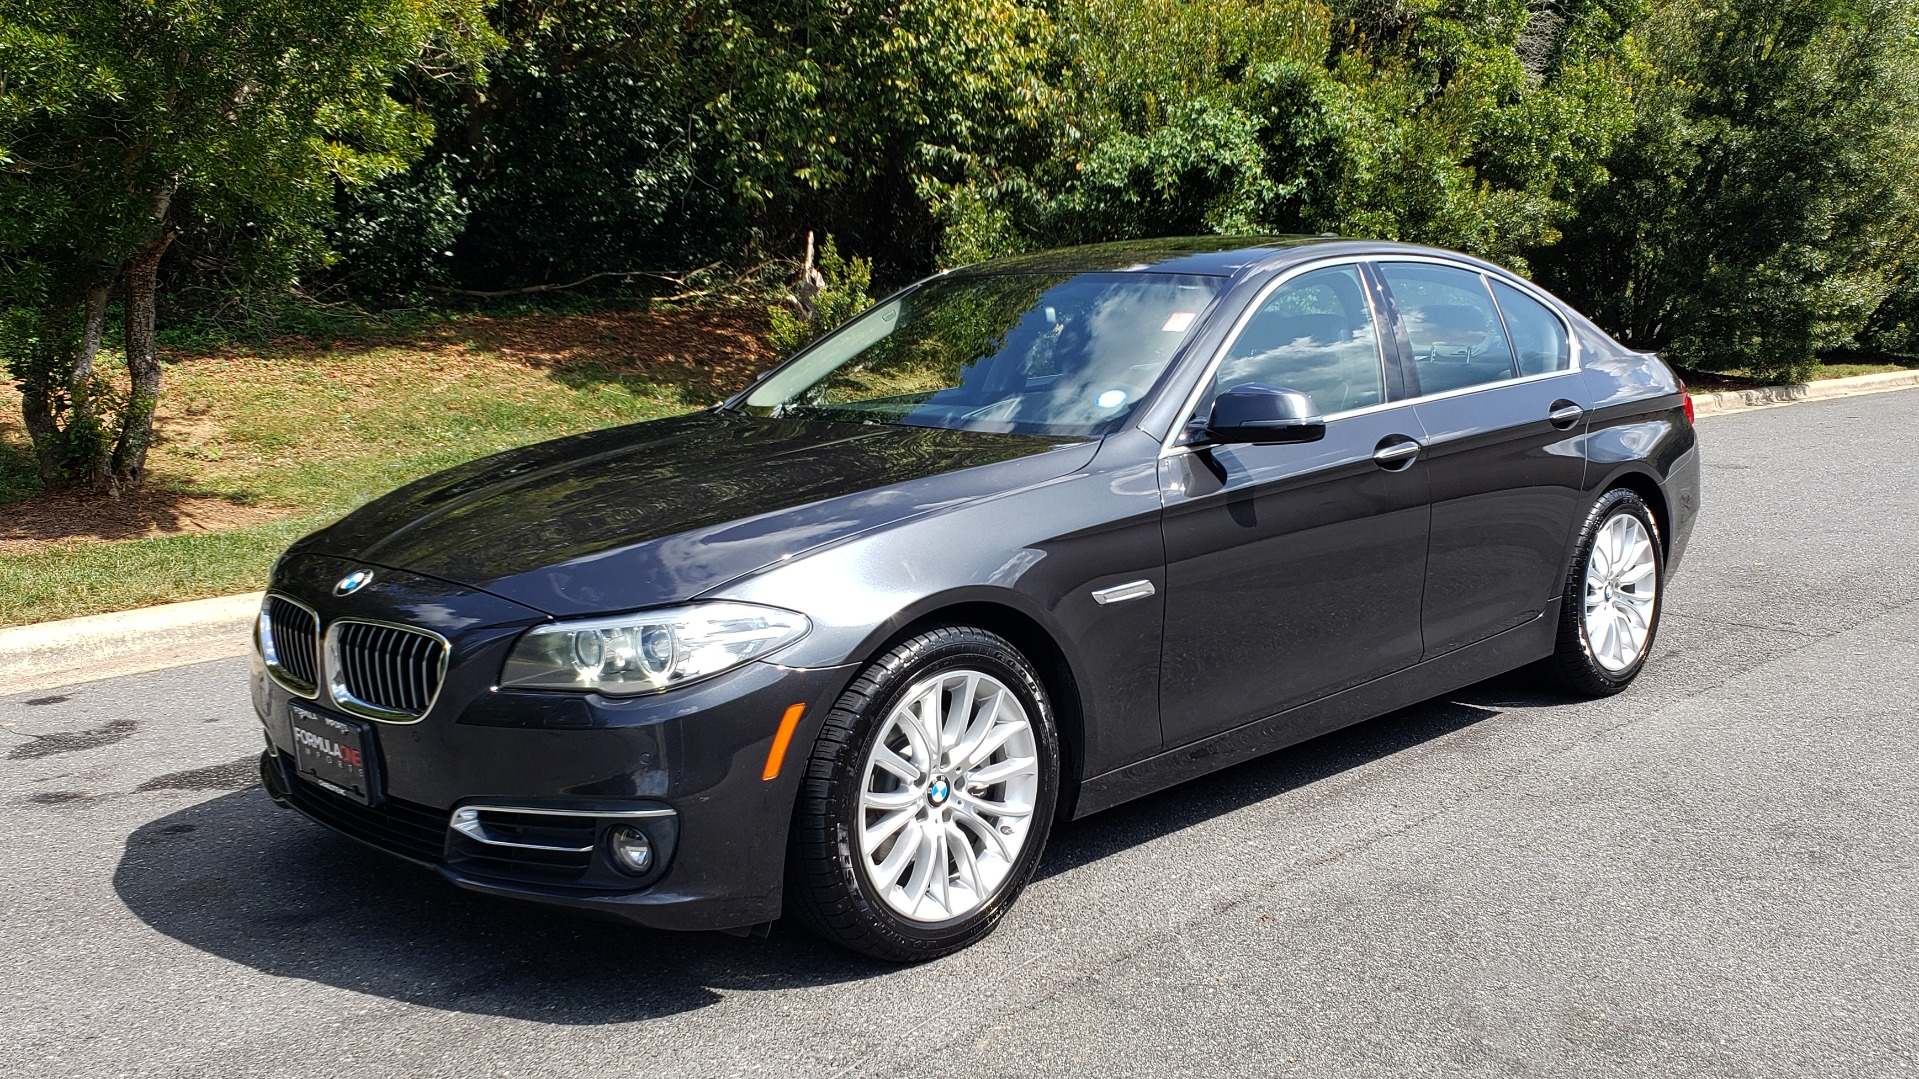 Used 2016 BMW 5 SERIES 528I XDRIVE / PREM / LUX / DRVR ASST / CLD WTHR / REARVIEW for sale Sold at Formula Imports in Charlotte NC 28227 5